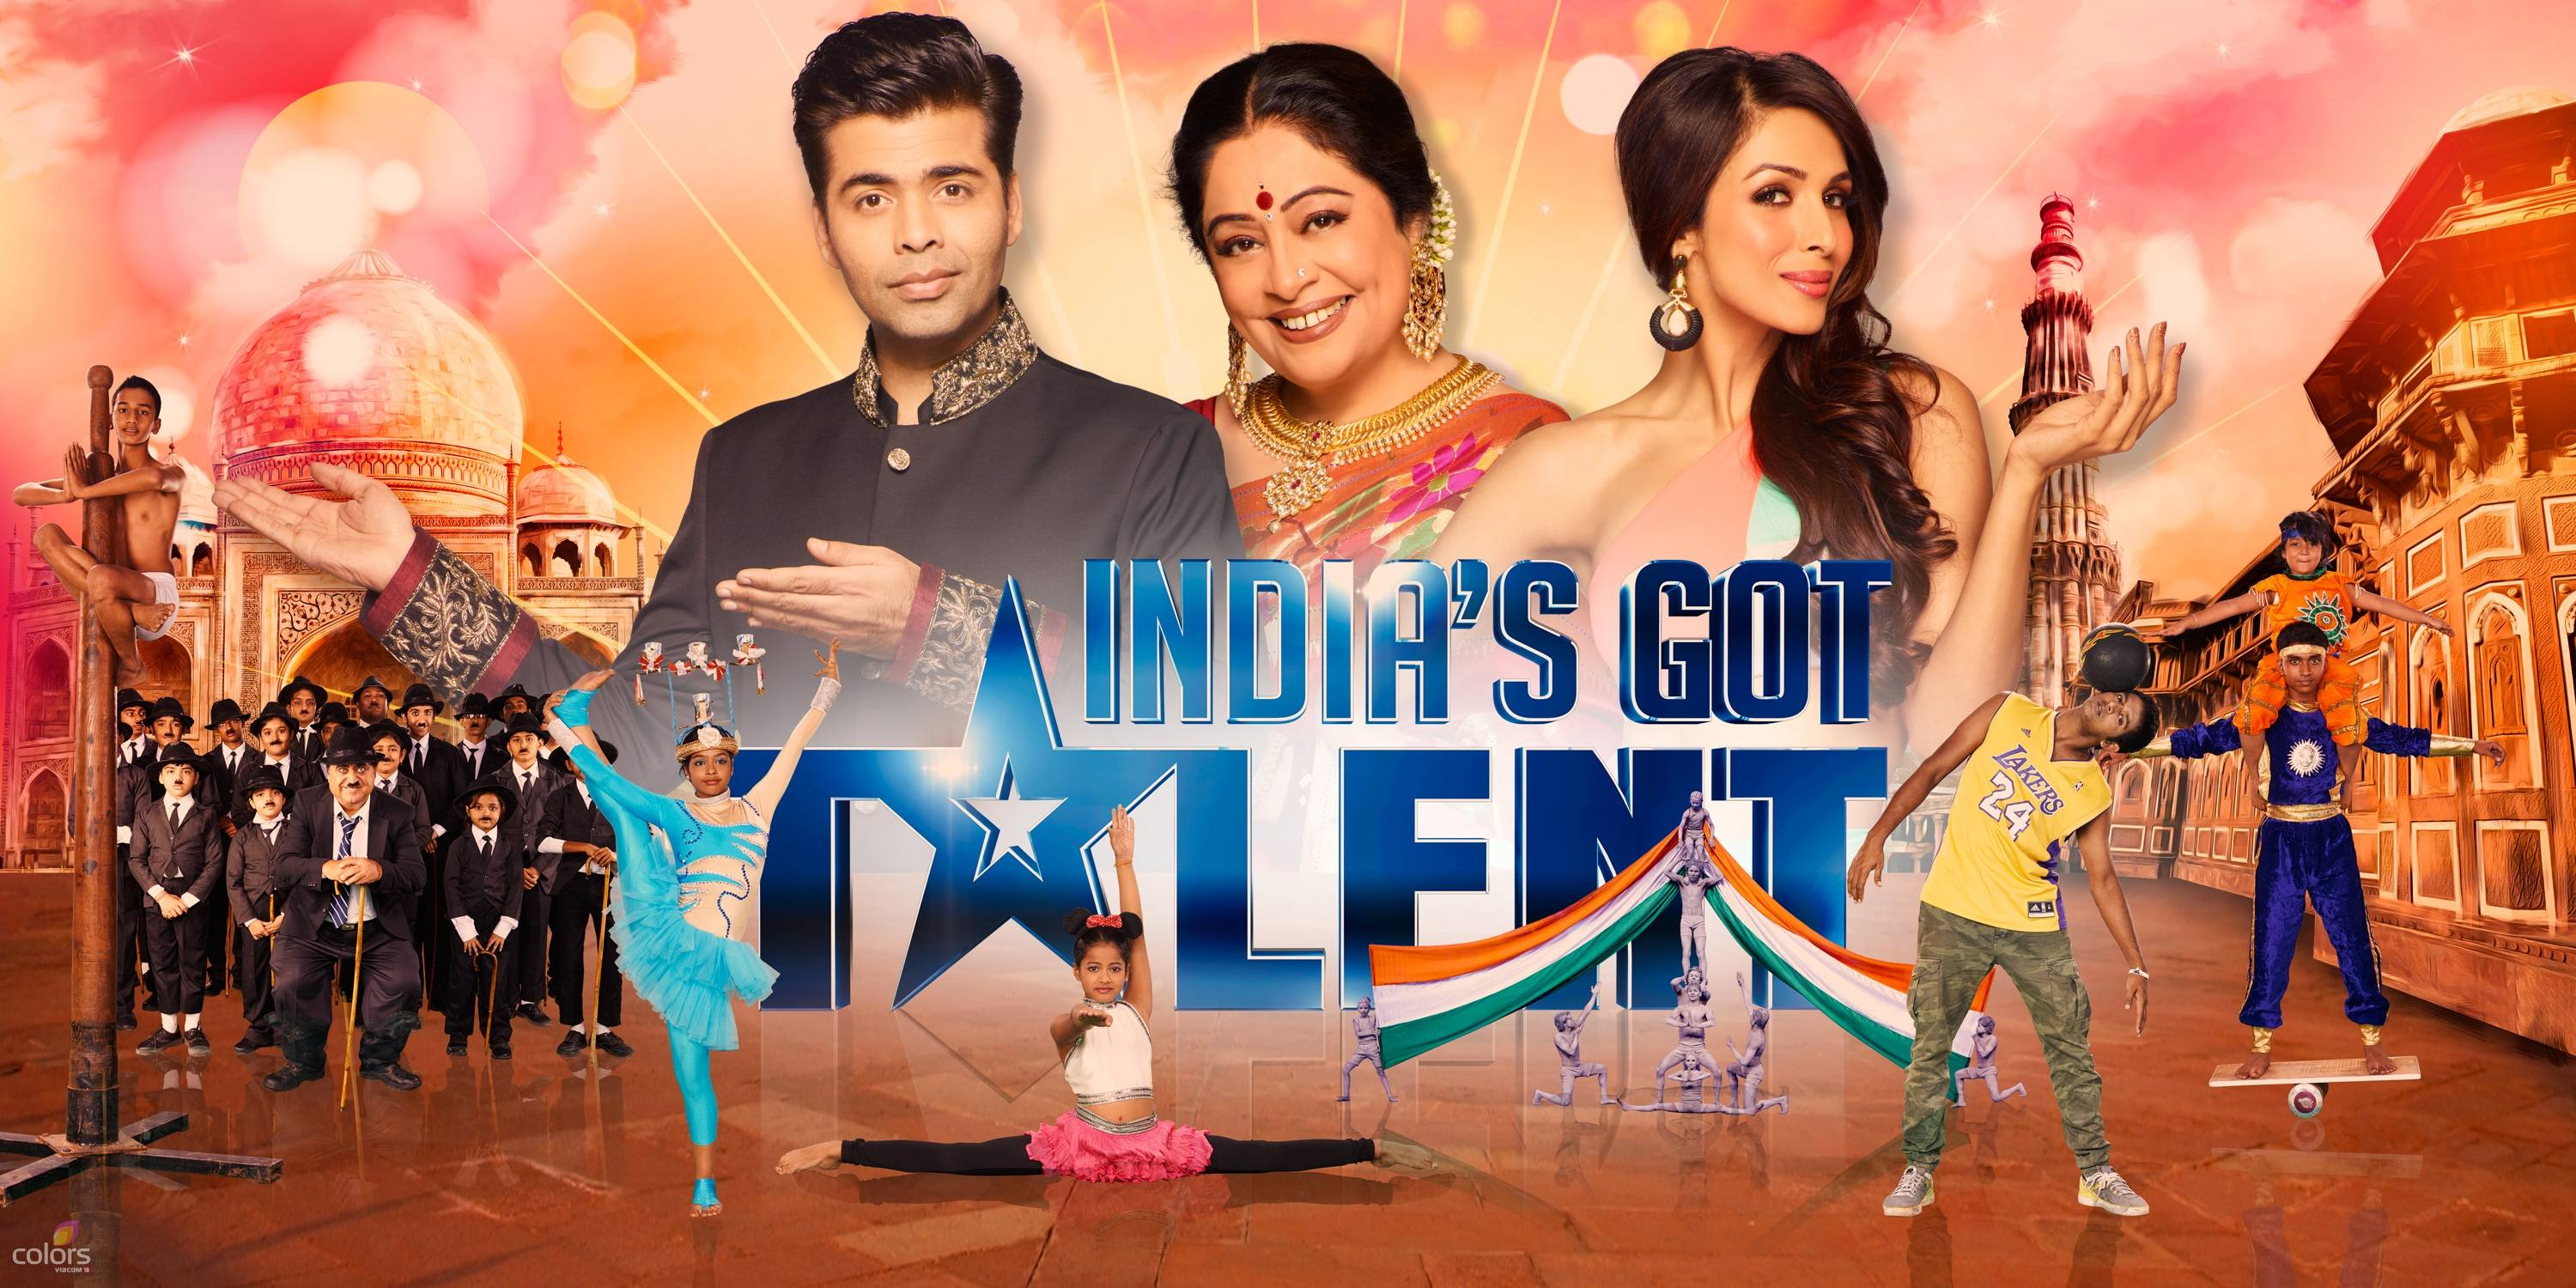 India's Got Talent on Colors